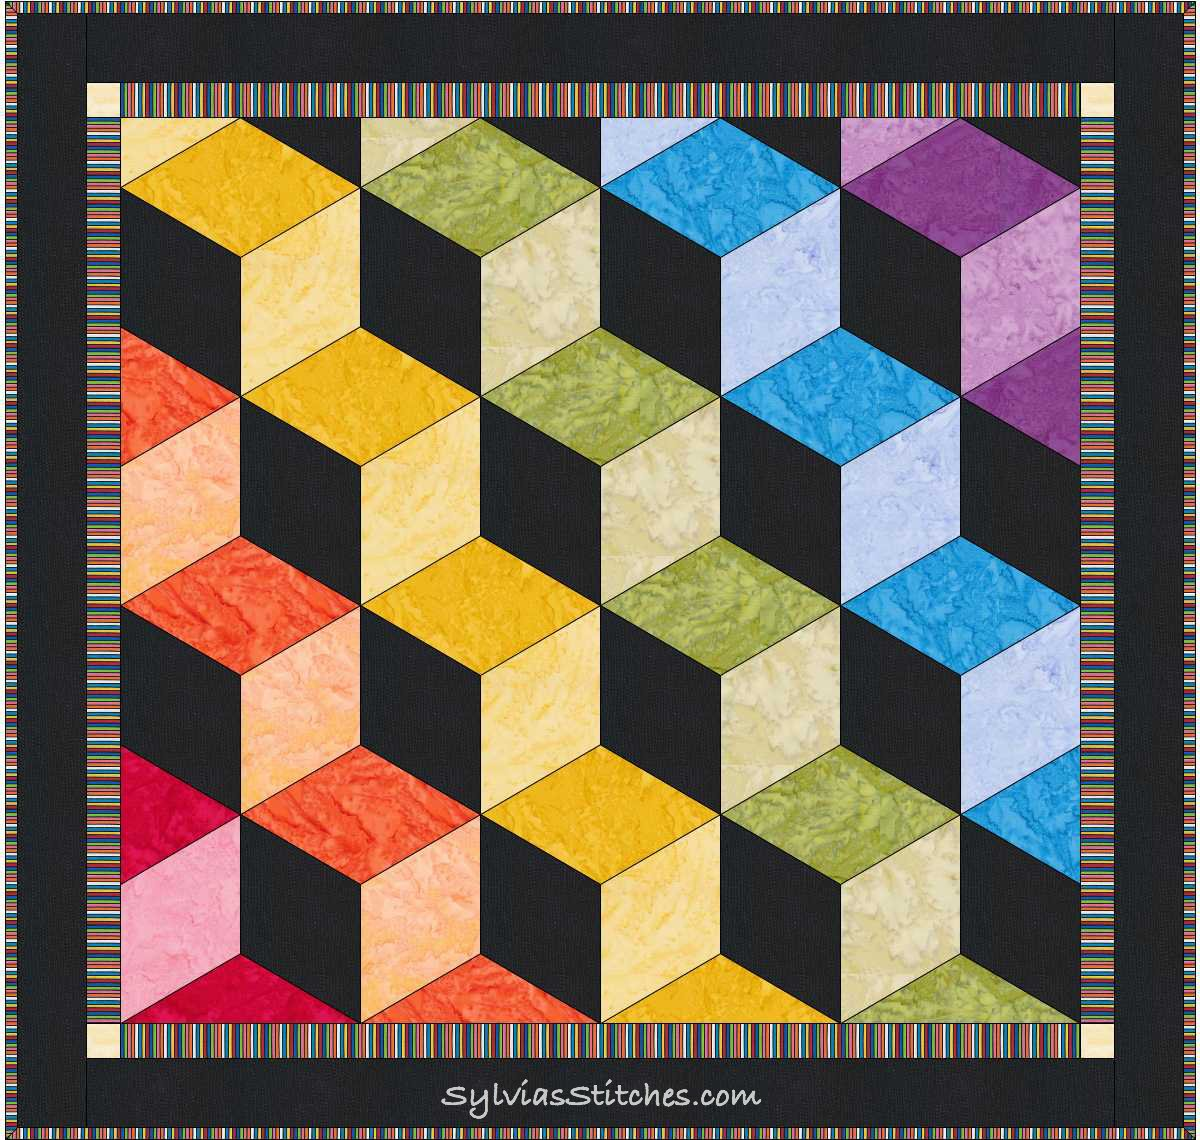 Free Quilt Block Design Program : EQ7 - Easy enough for a 12-year-old! - Sylvia s Stitches